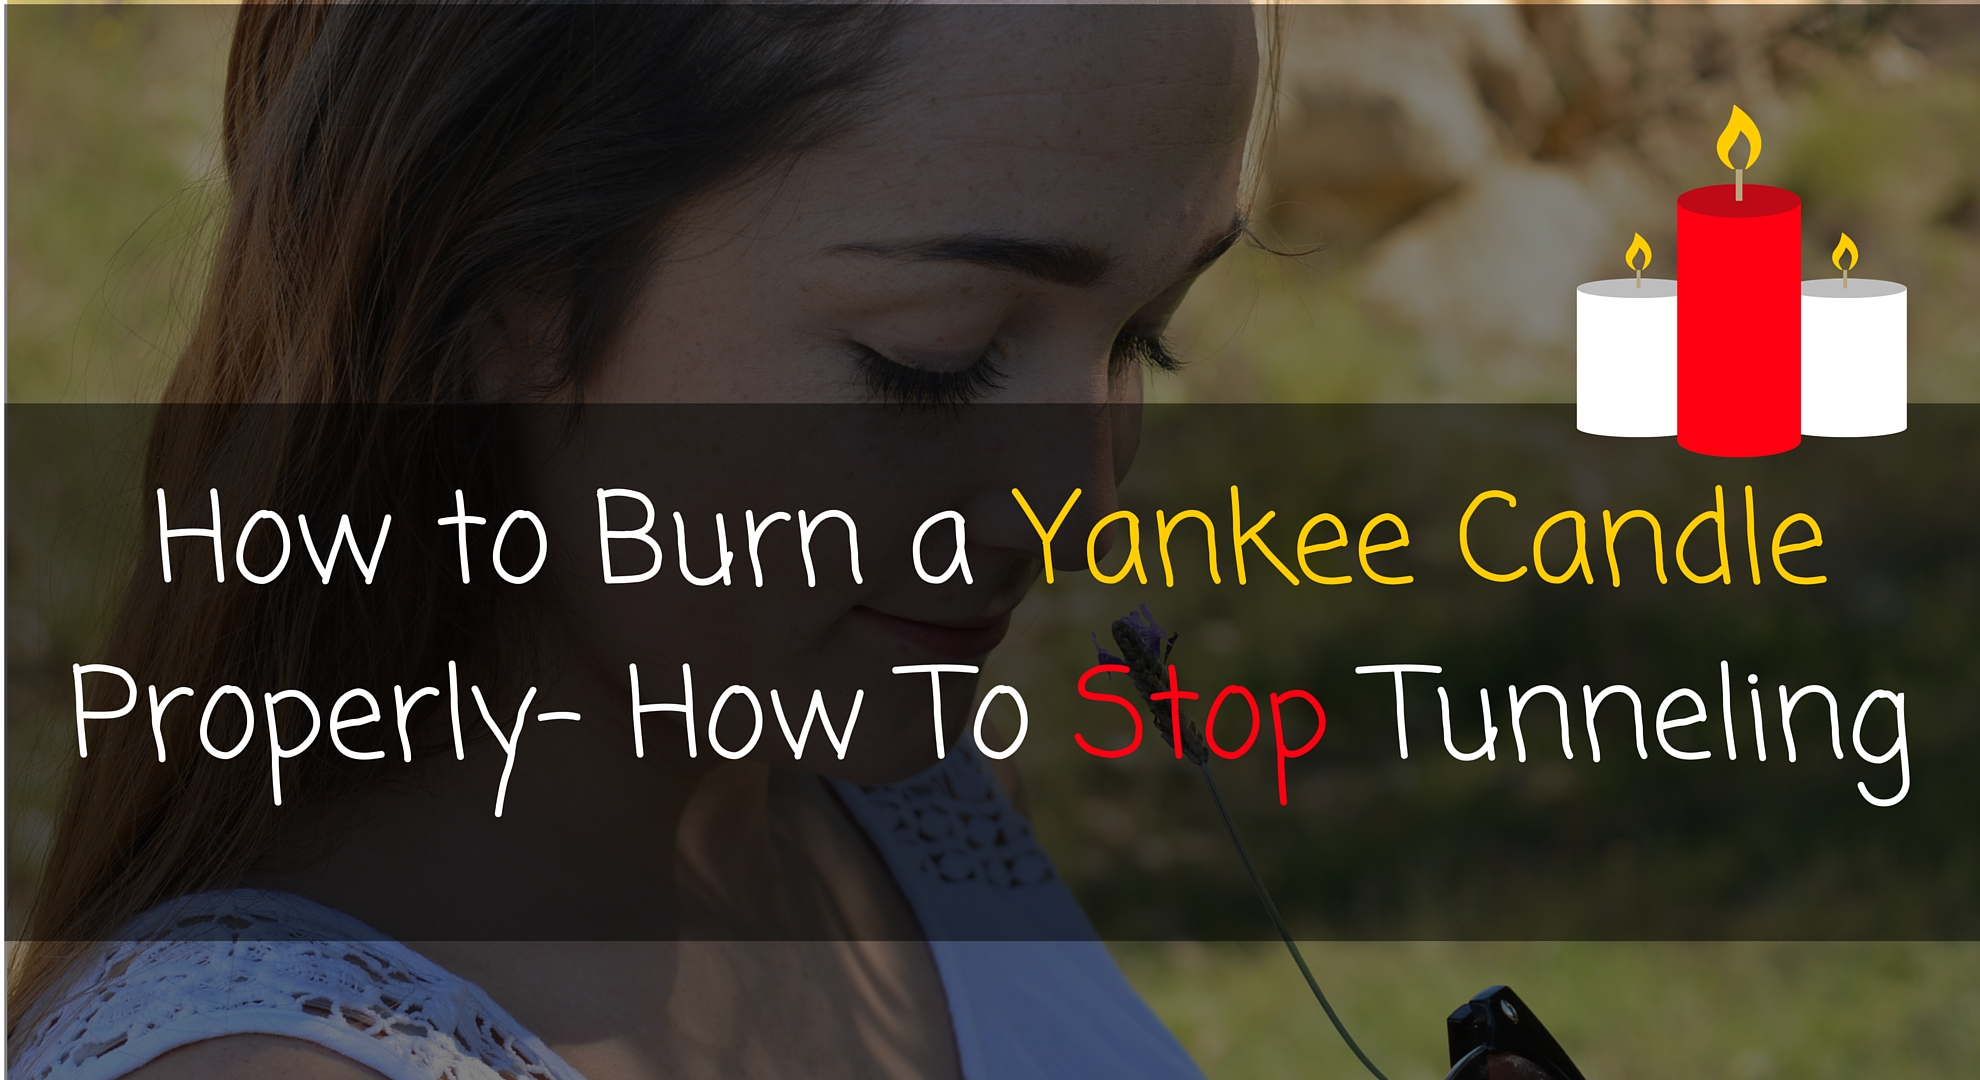 How To Burn A Yankee Candle Properly How To Stop Tunneling